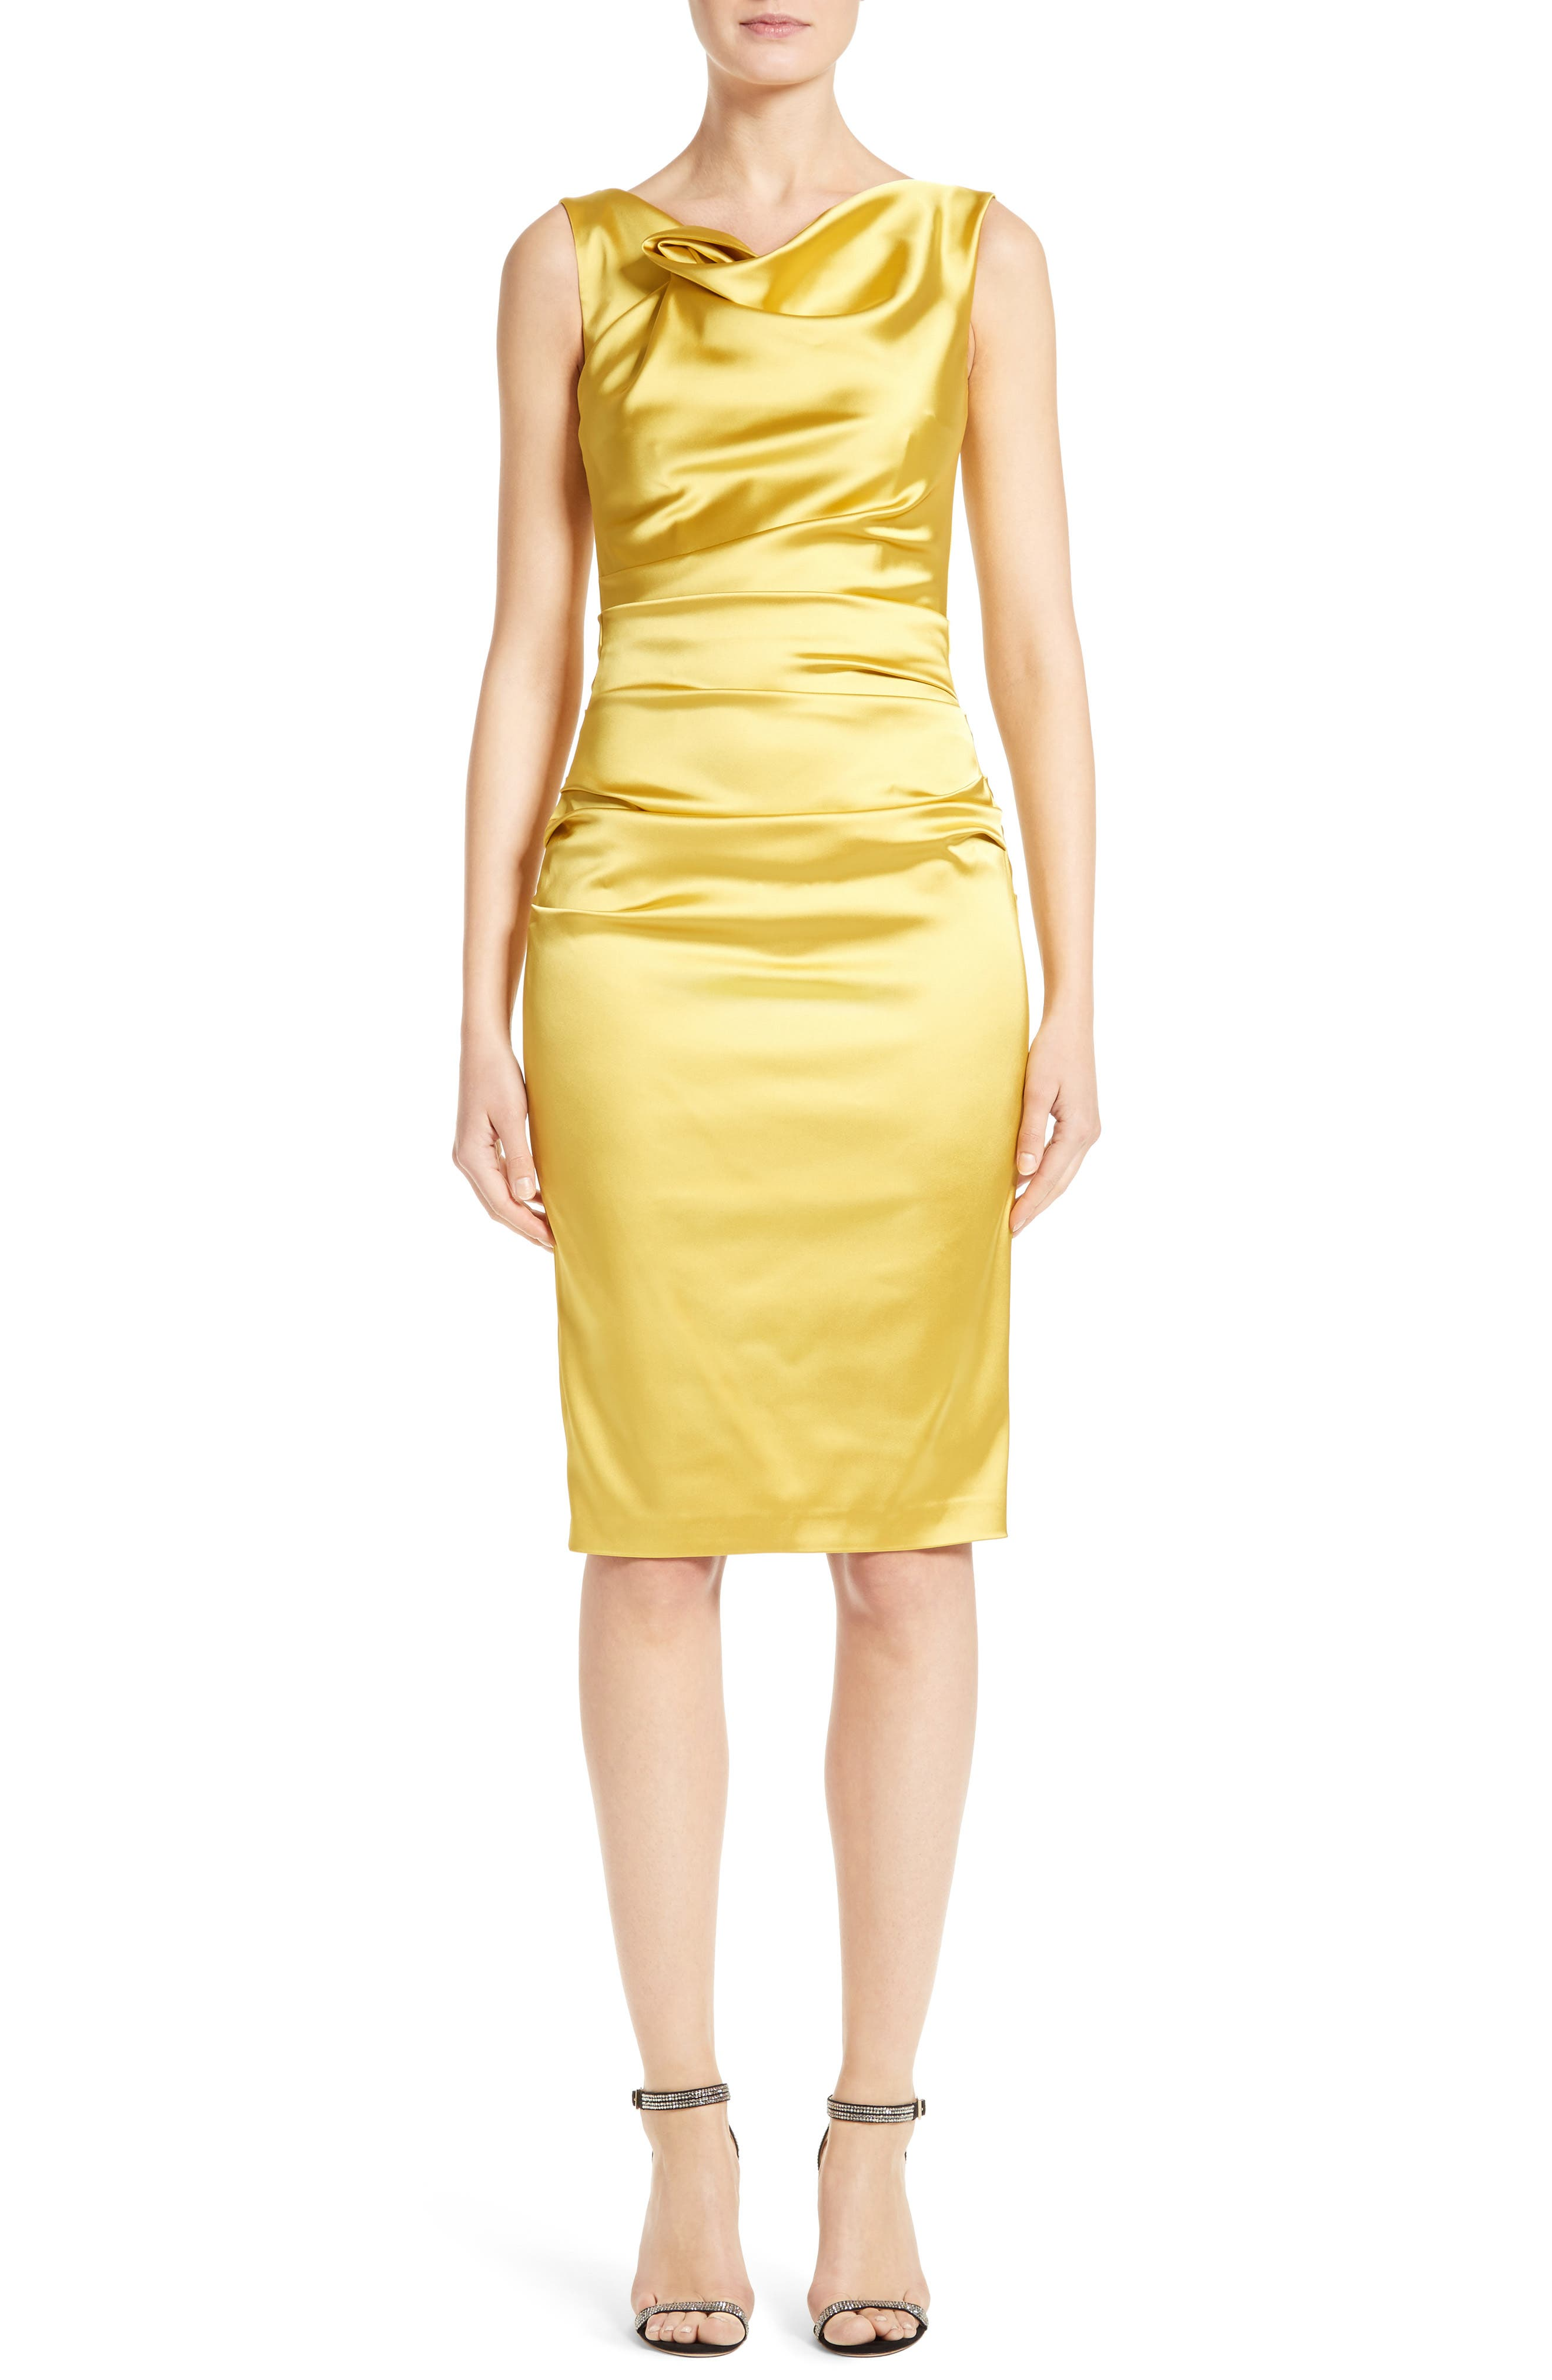 Alternate Image 1 Selected - Talbot Runhof Stretch Satin Sheath Dress